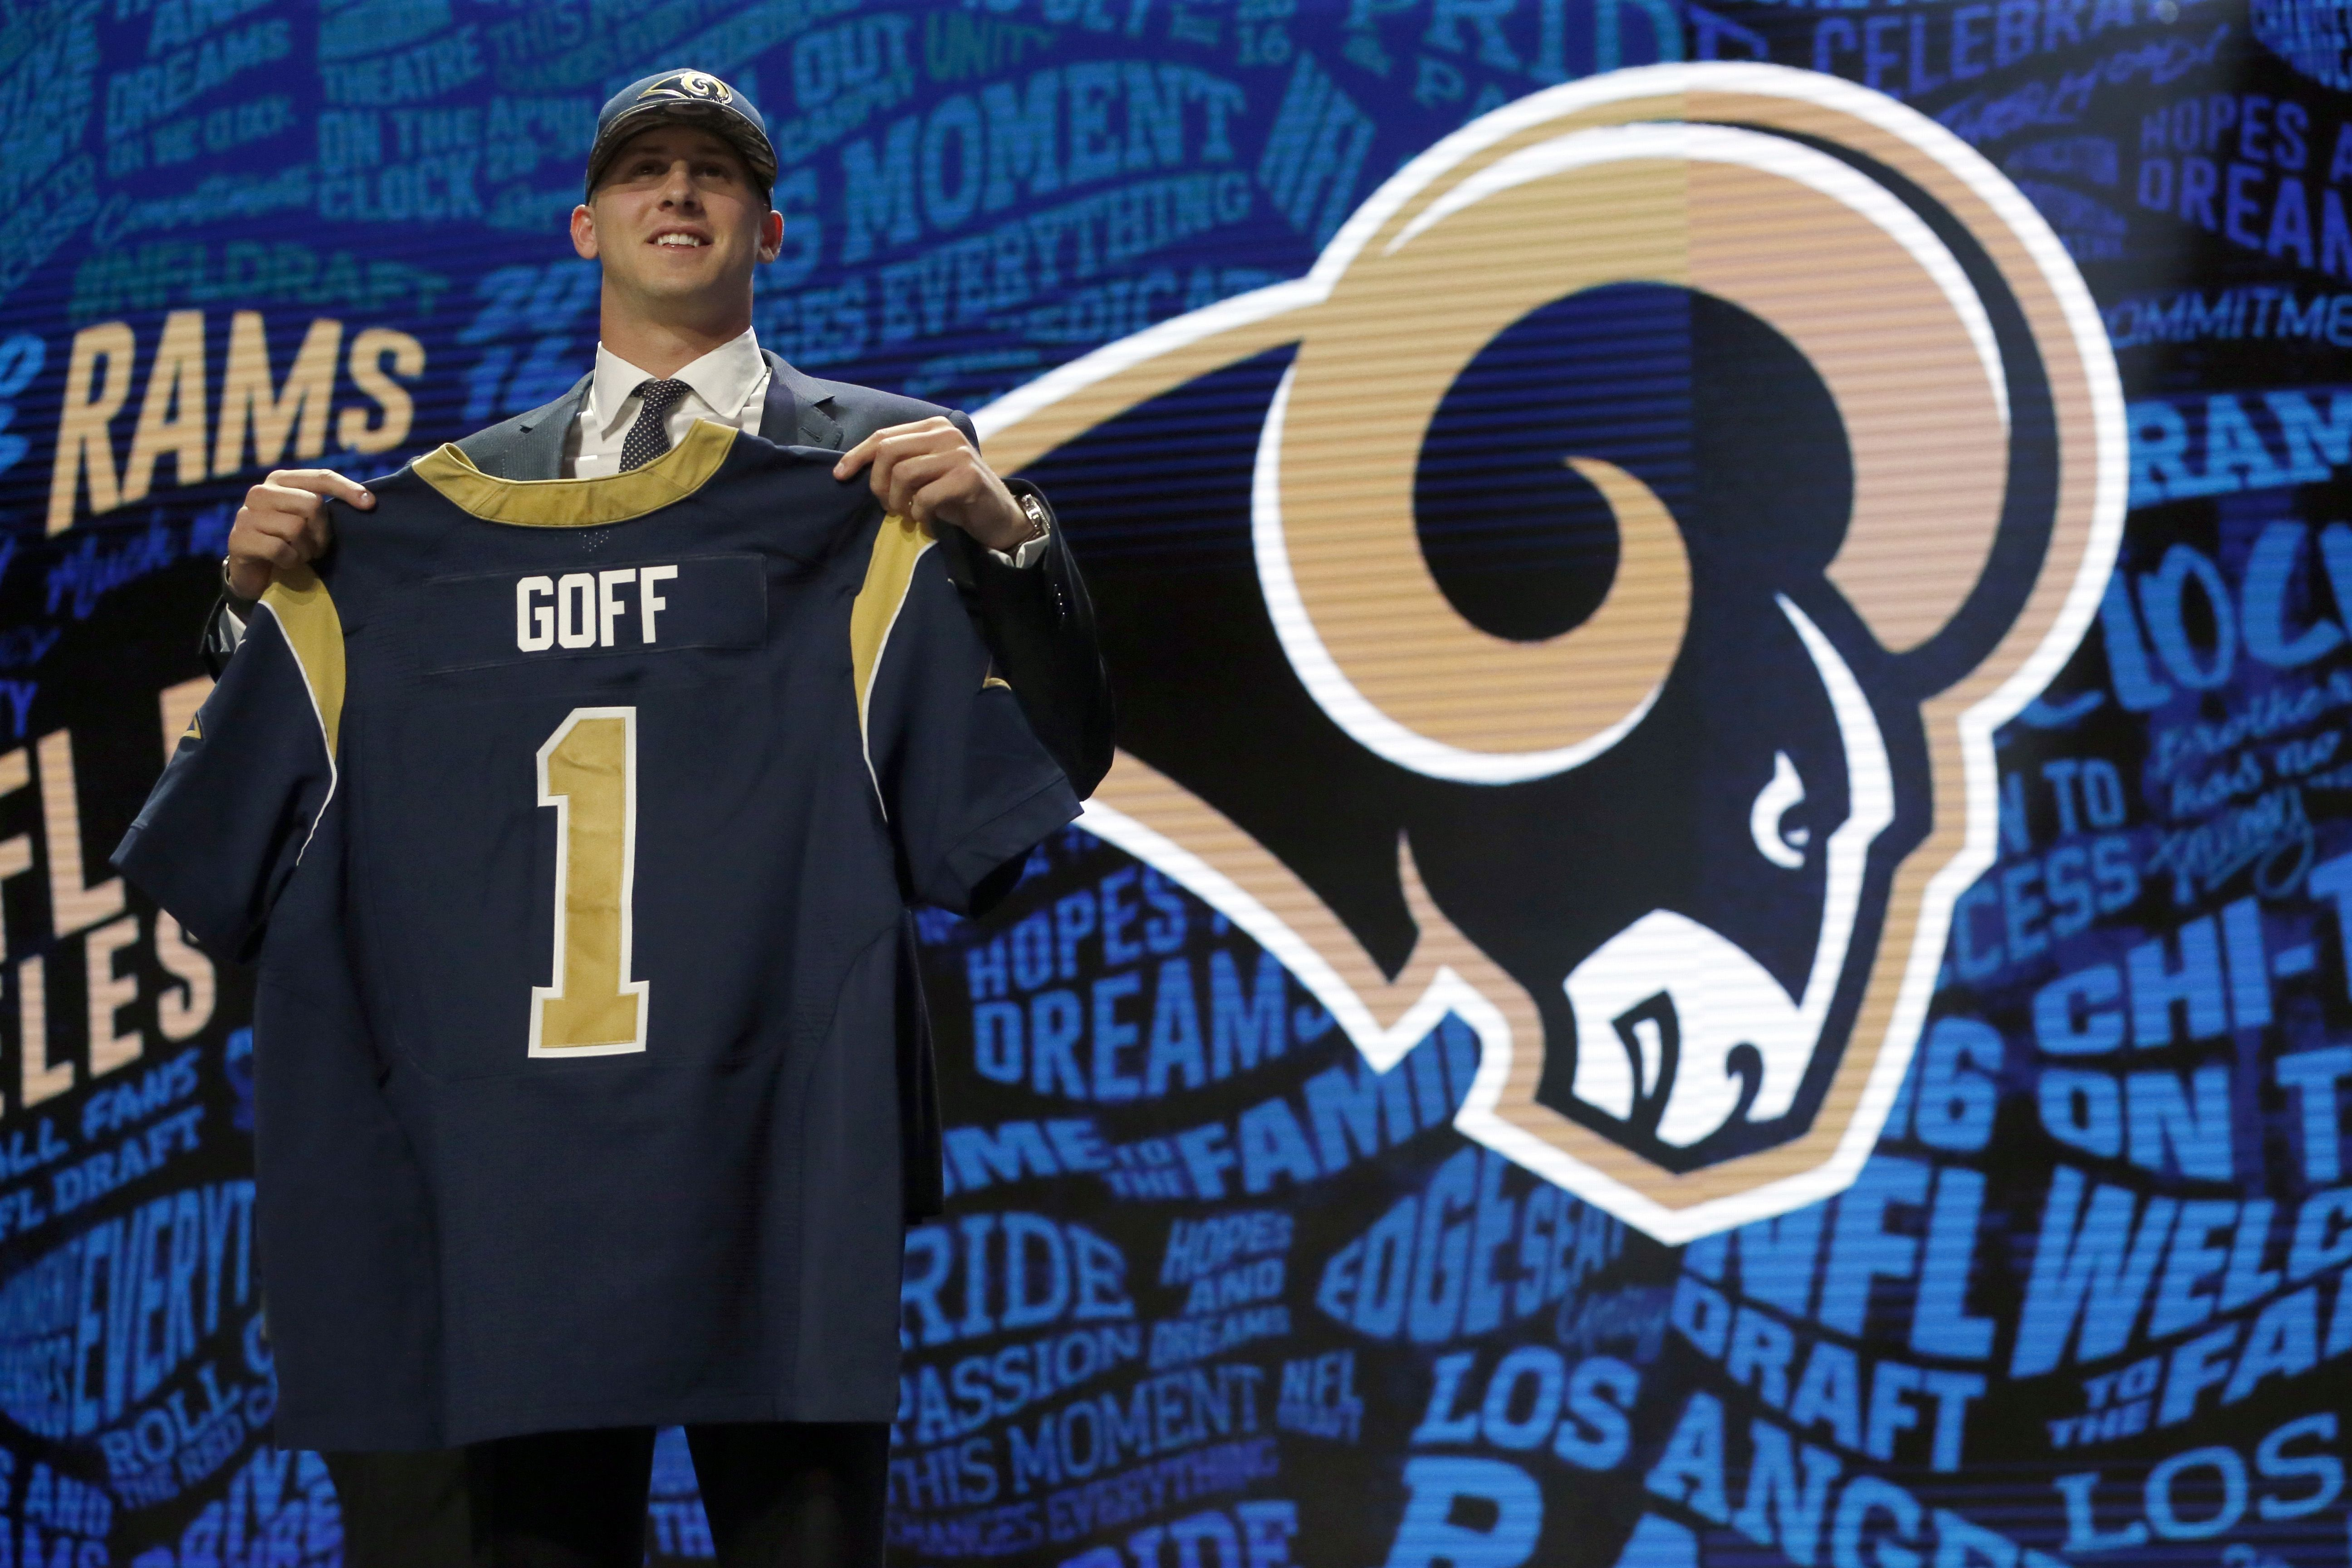 The Los Angeles Rams Used Their Newly Acquired No 1 Pick Select Jared Goff From Cal Were They The Winners Of The Night Tun Football Photos Nfl Draft La Rams